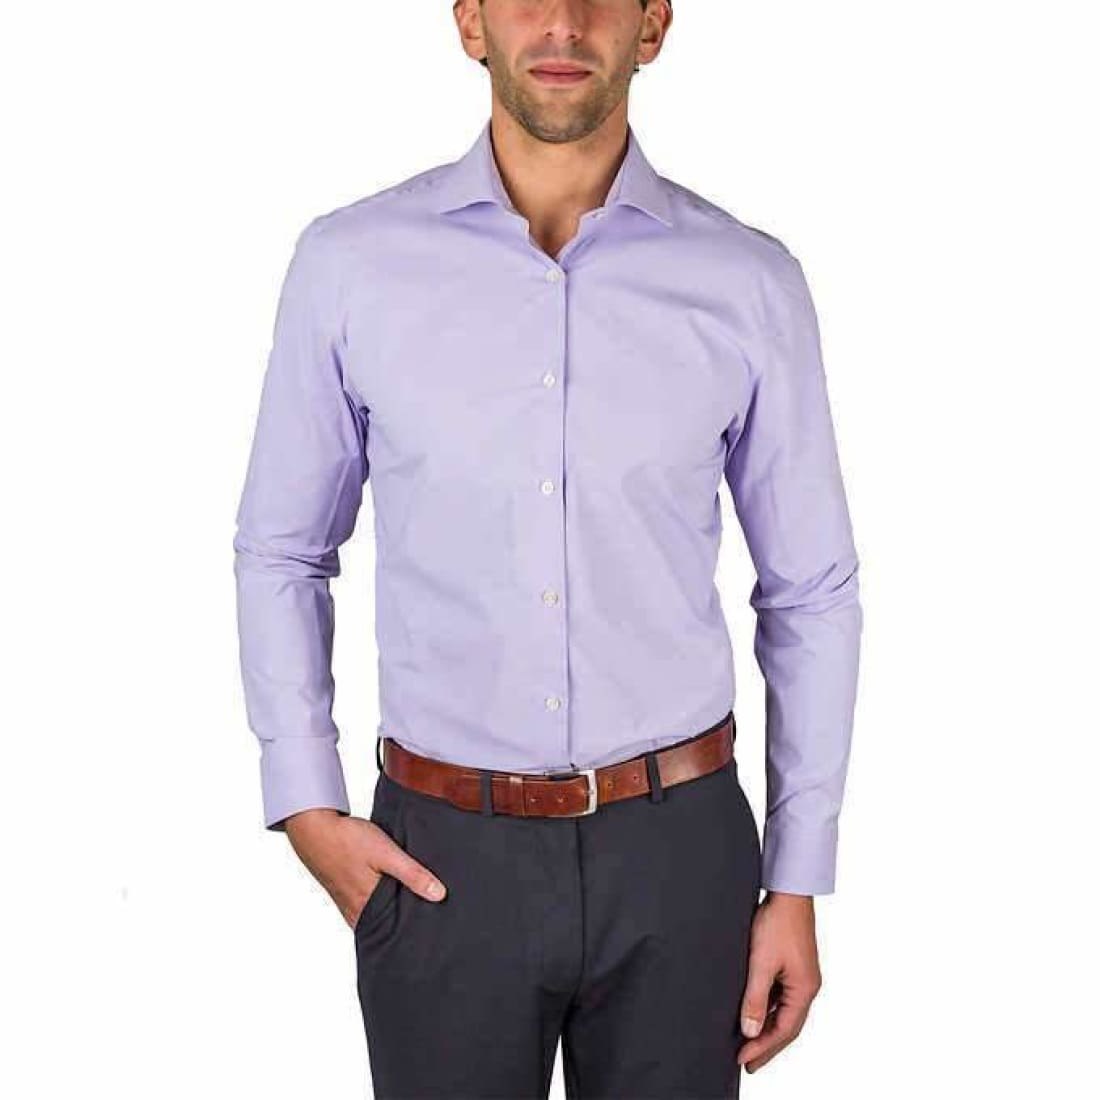 Perry Ellis Mens Dress Shirt 16 1/2-34/35 Regular / Purple Dress Shirts